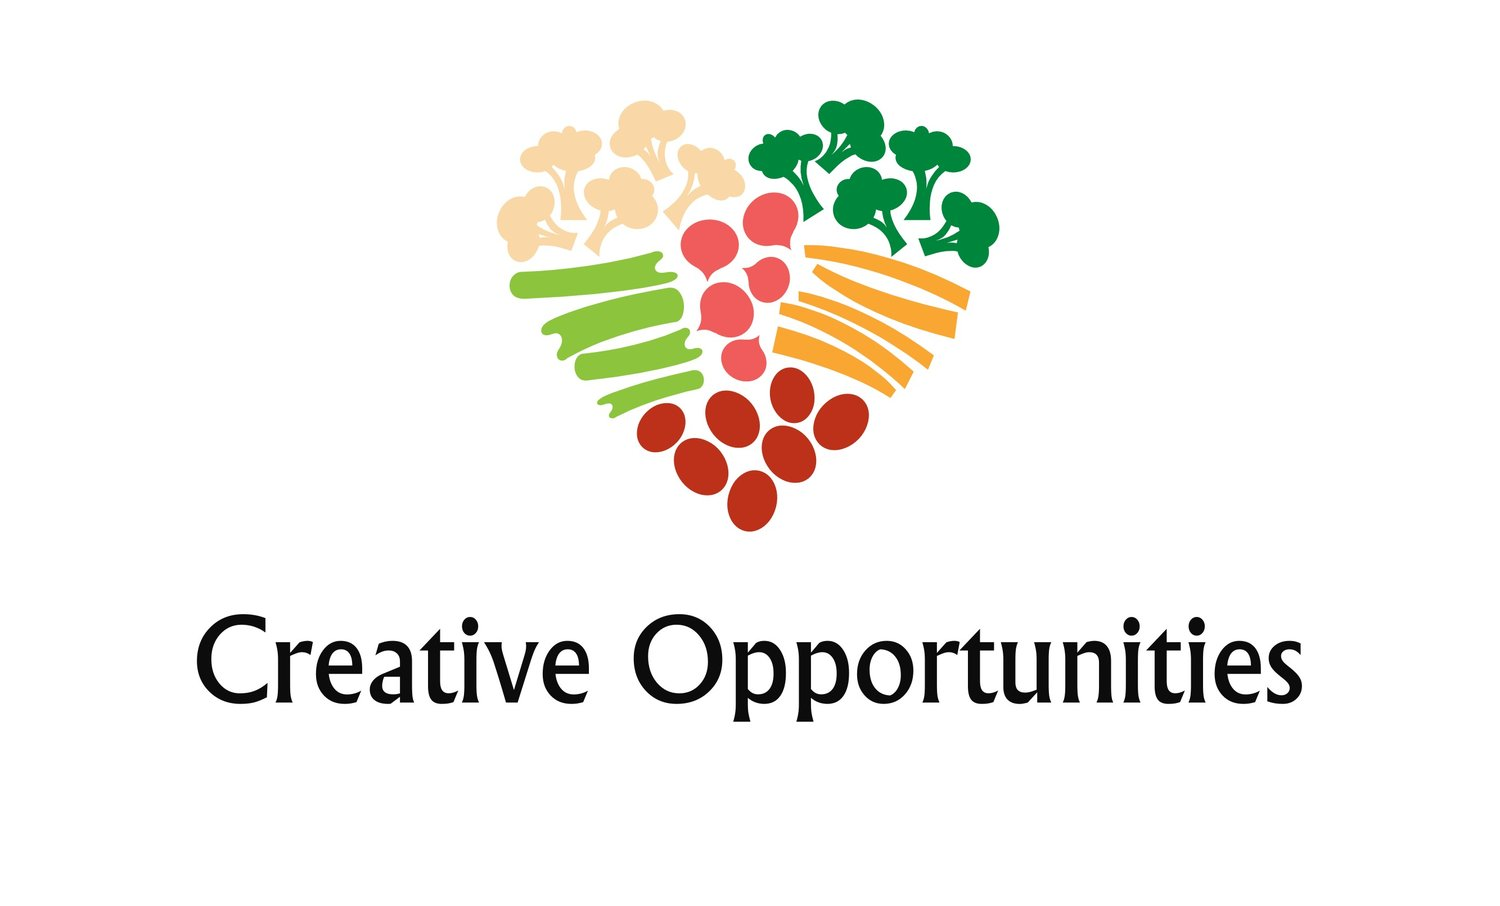 Creative Opportunities